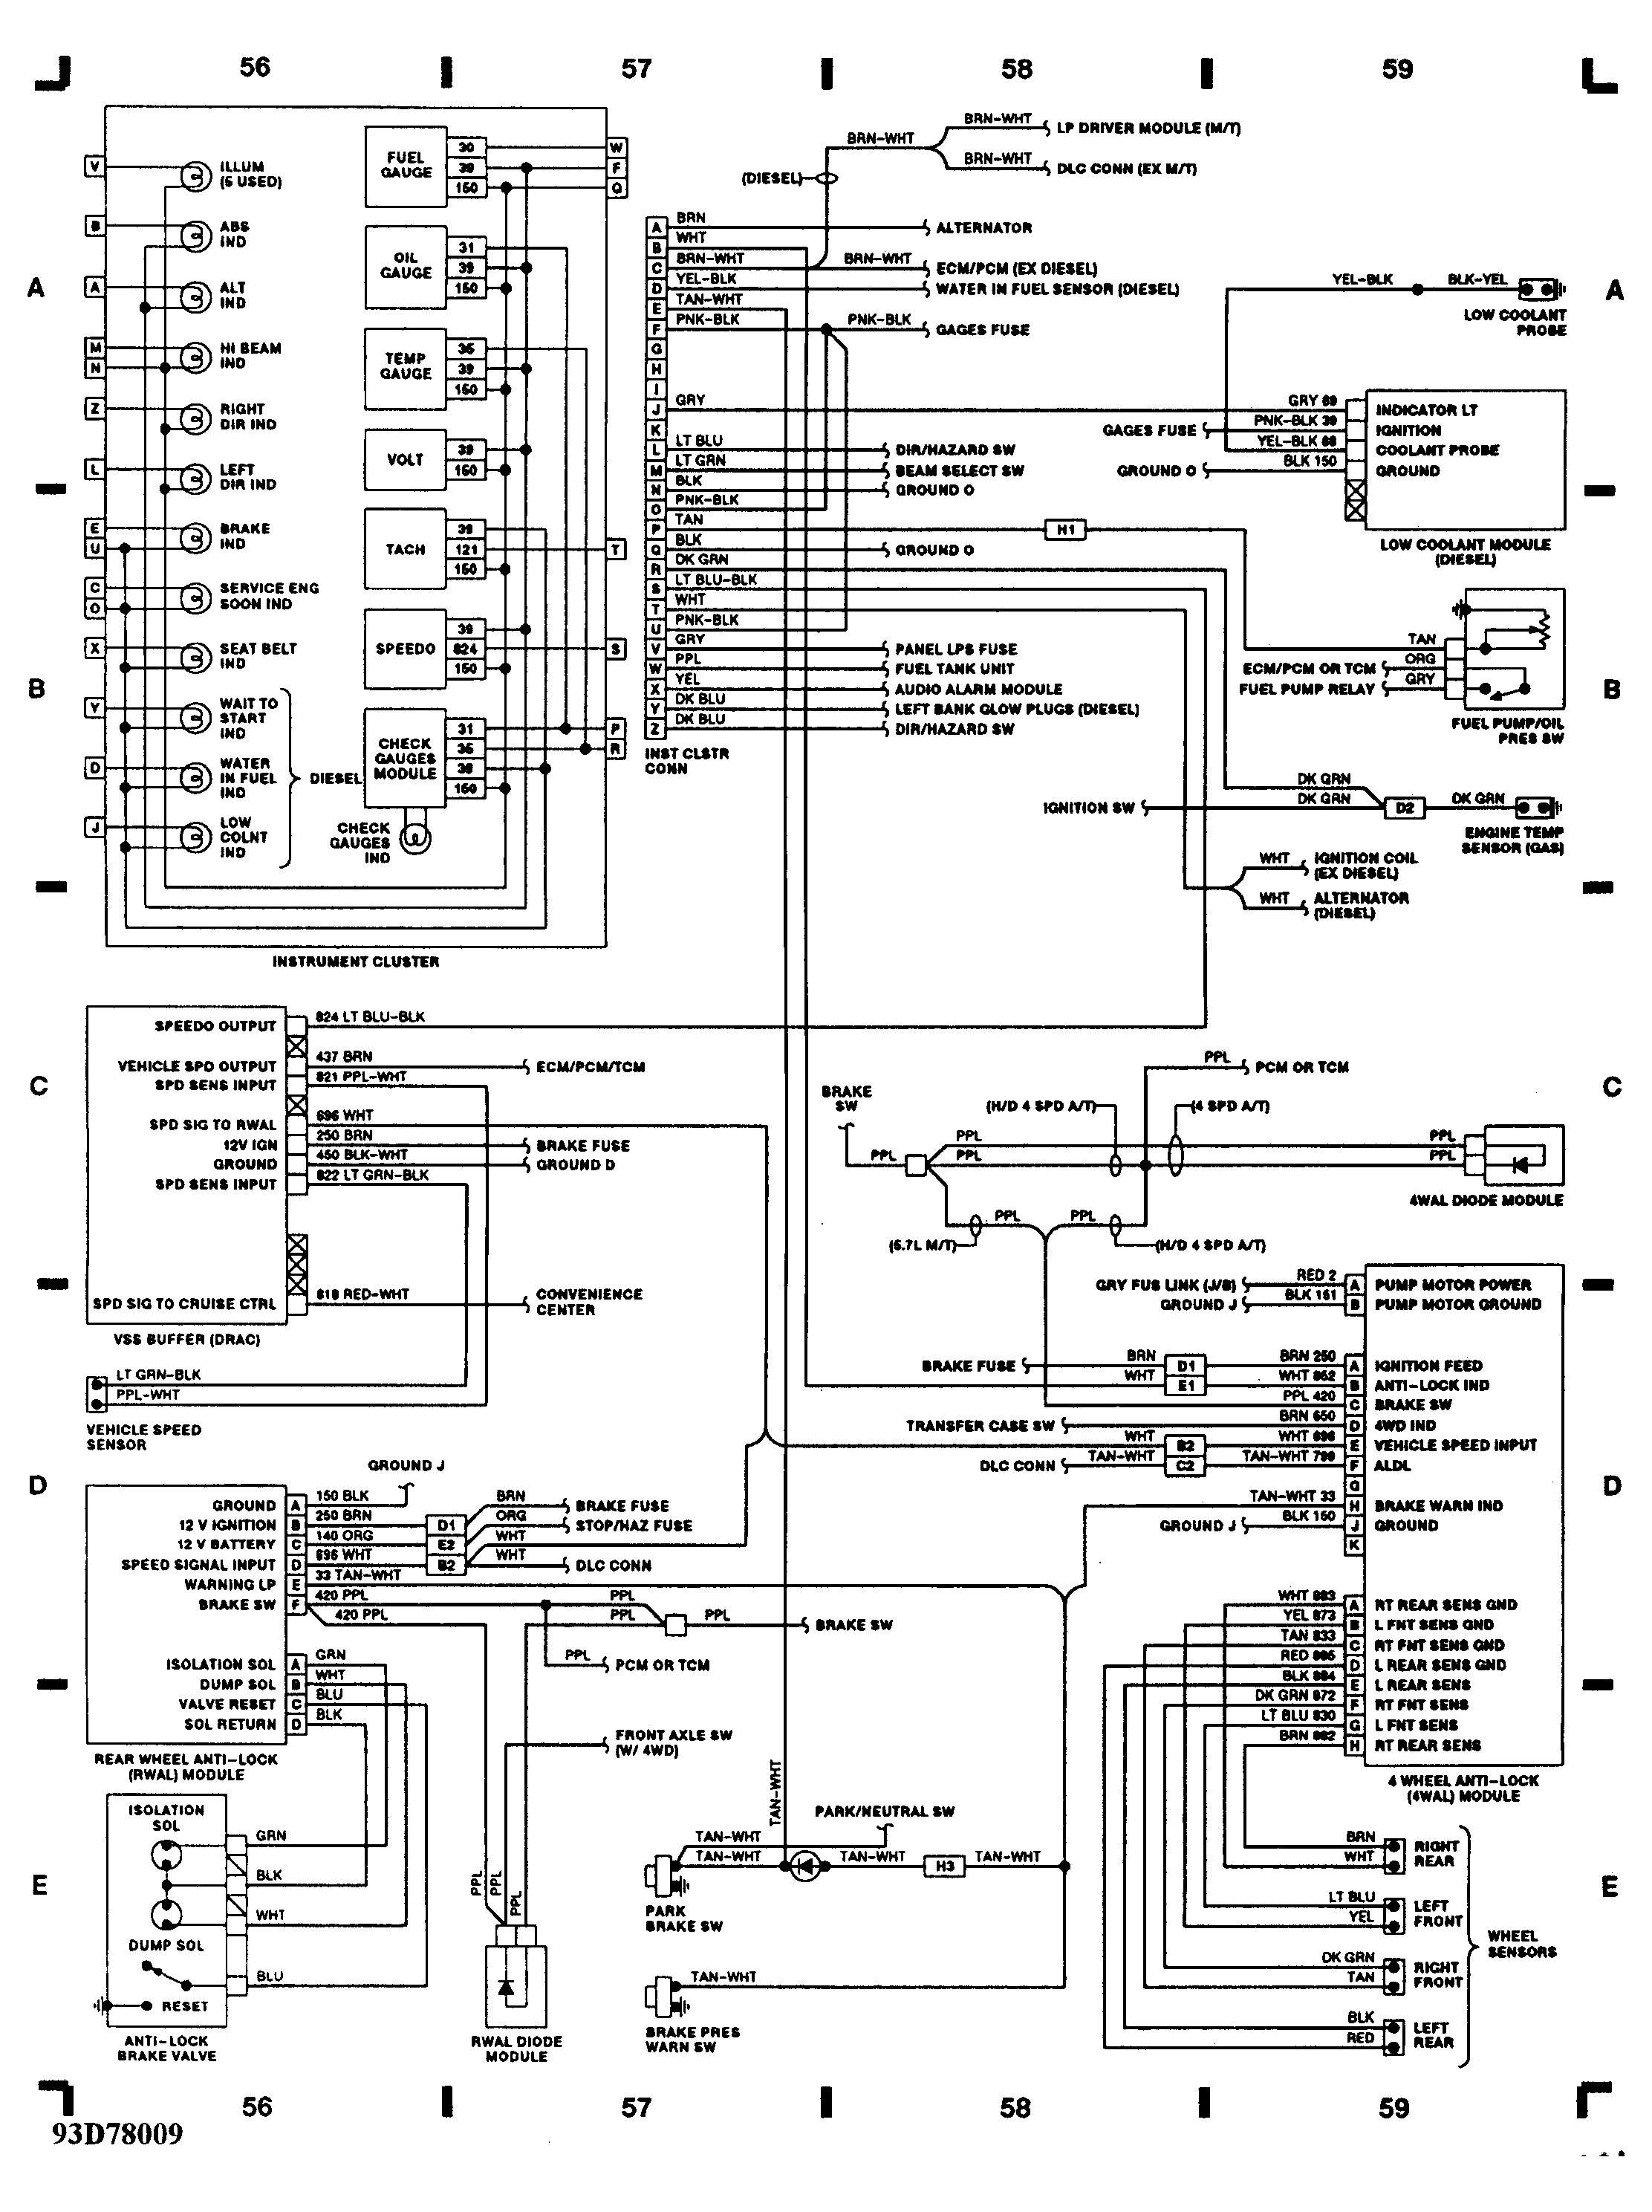 Diagram Of Car Front End Wiring Diagram Car Ac Best 2004